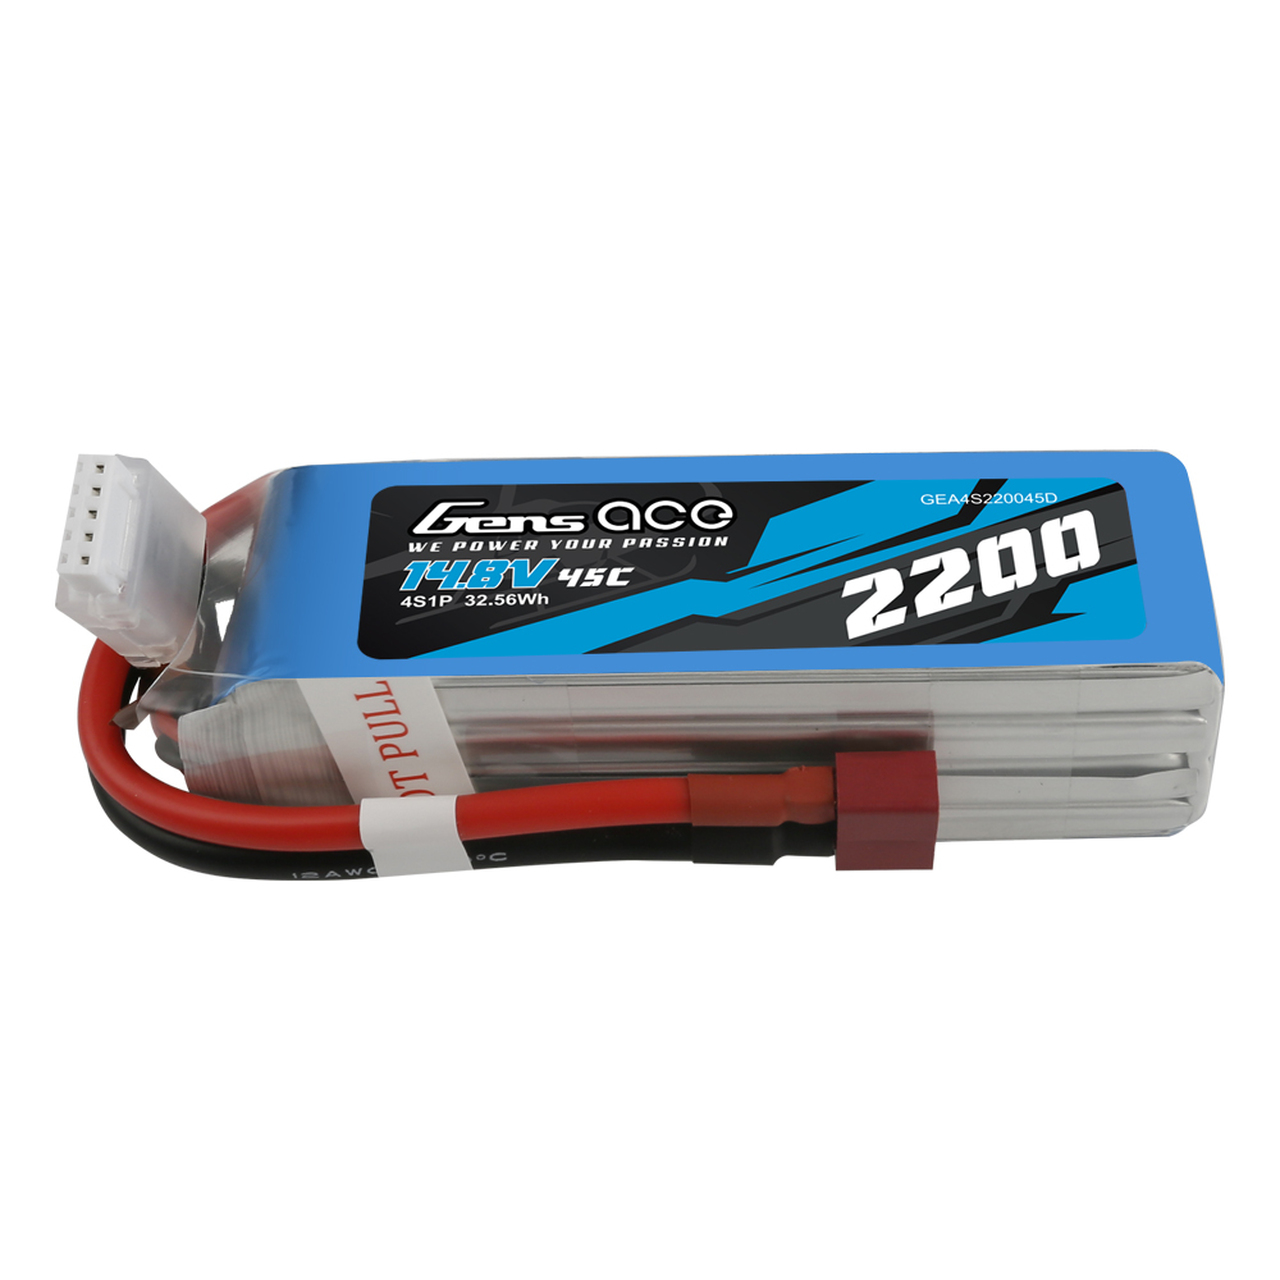 Gens ace 2200mAh 45C  14.8V  4S1P Lipo Battery Pack with DeansPlug